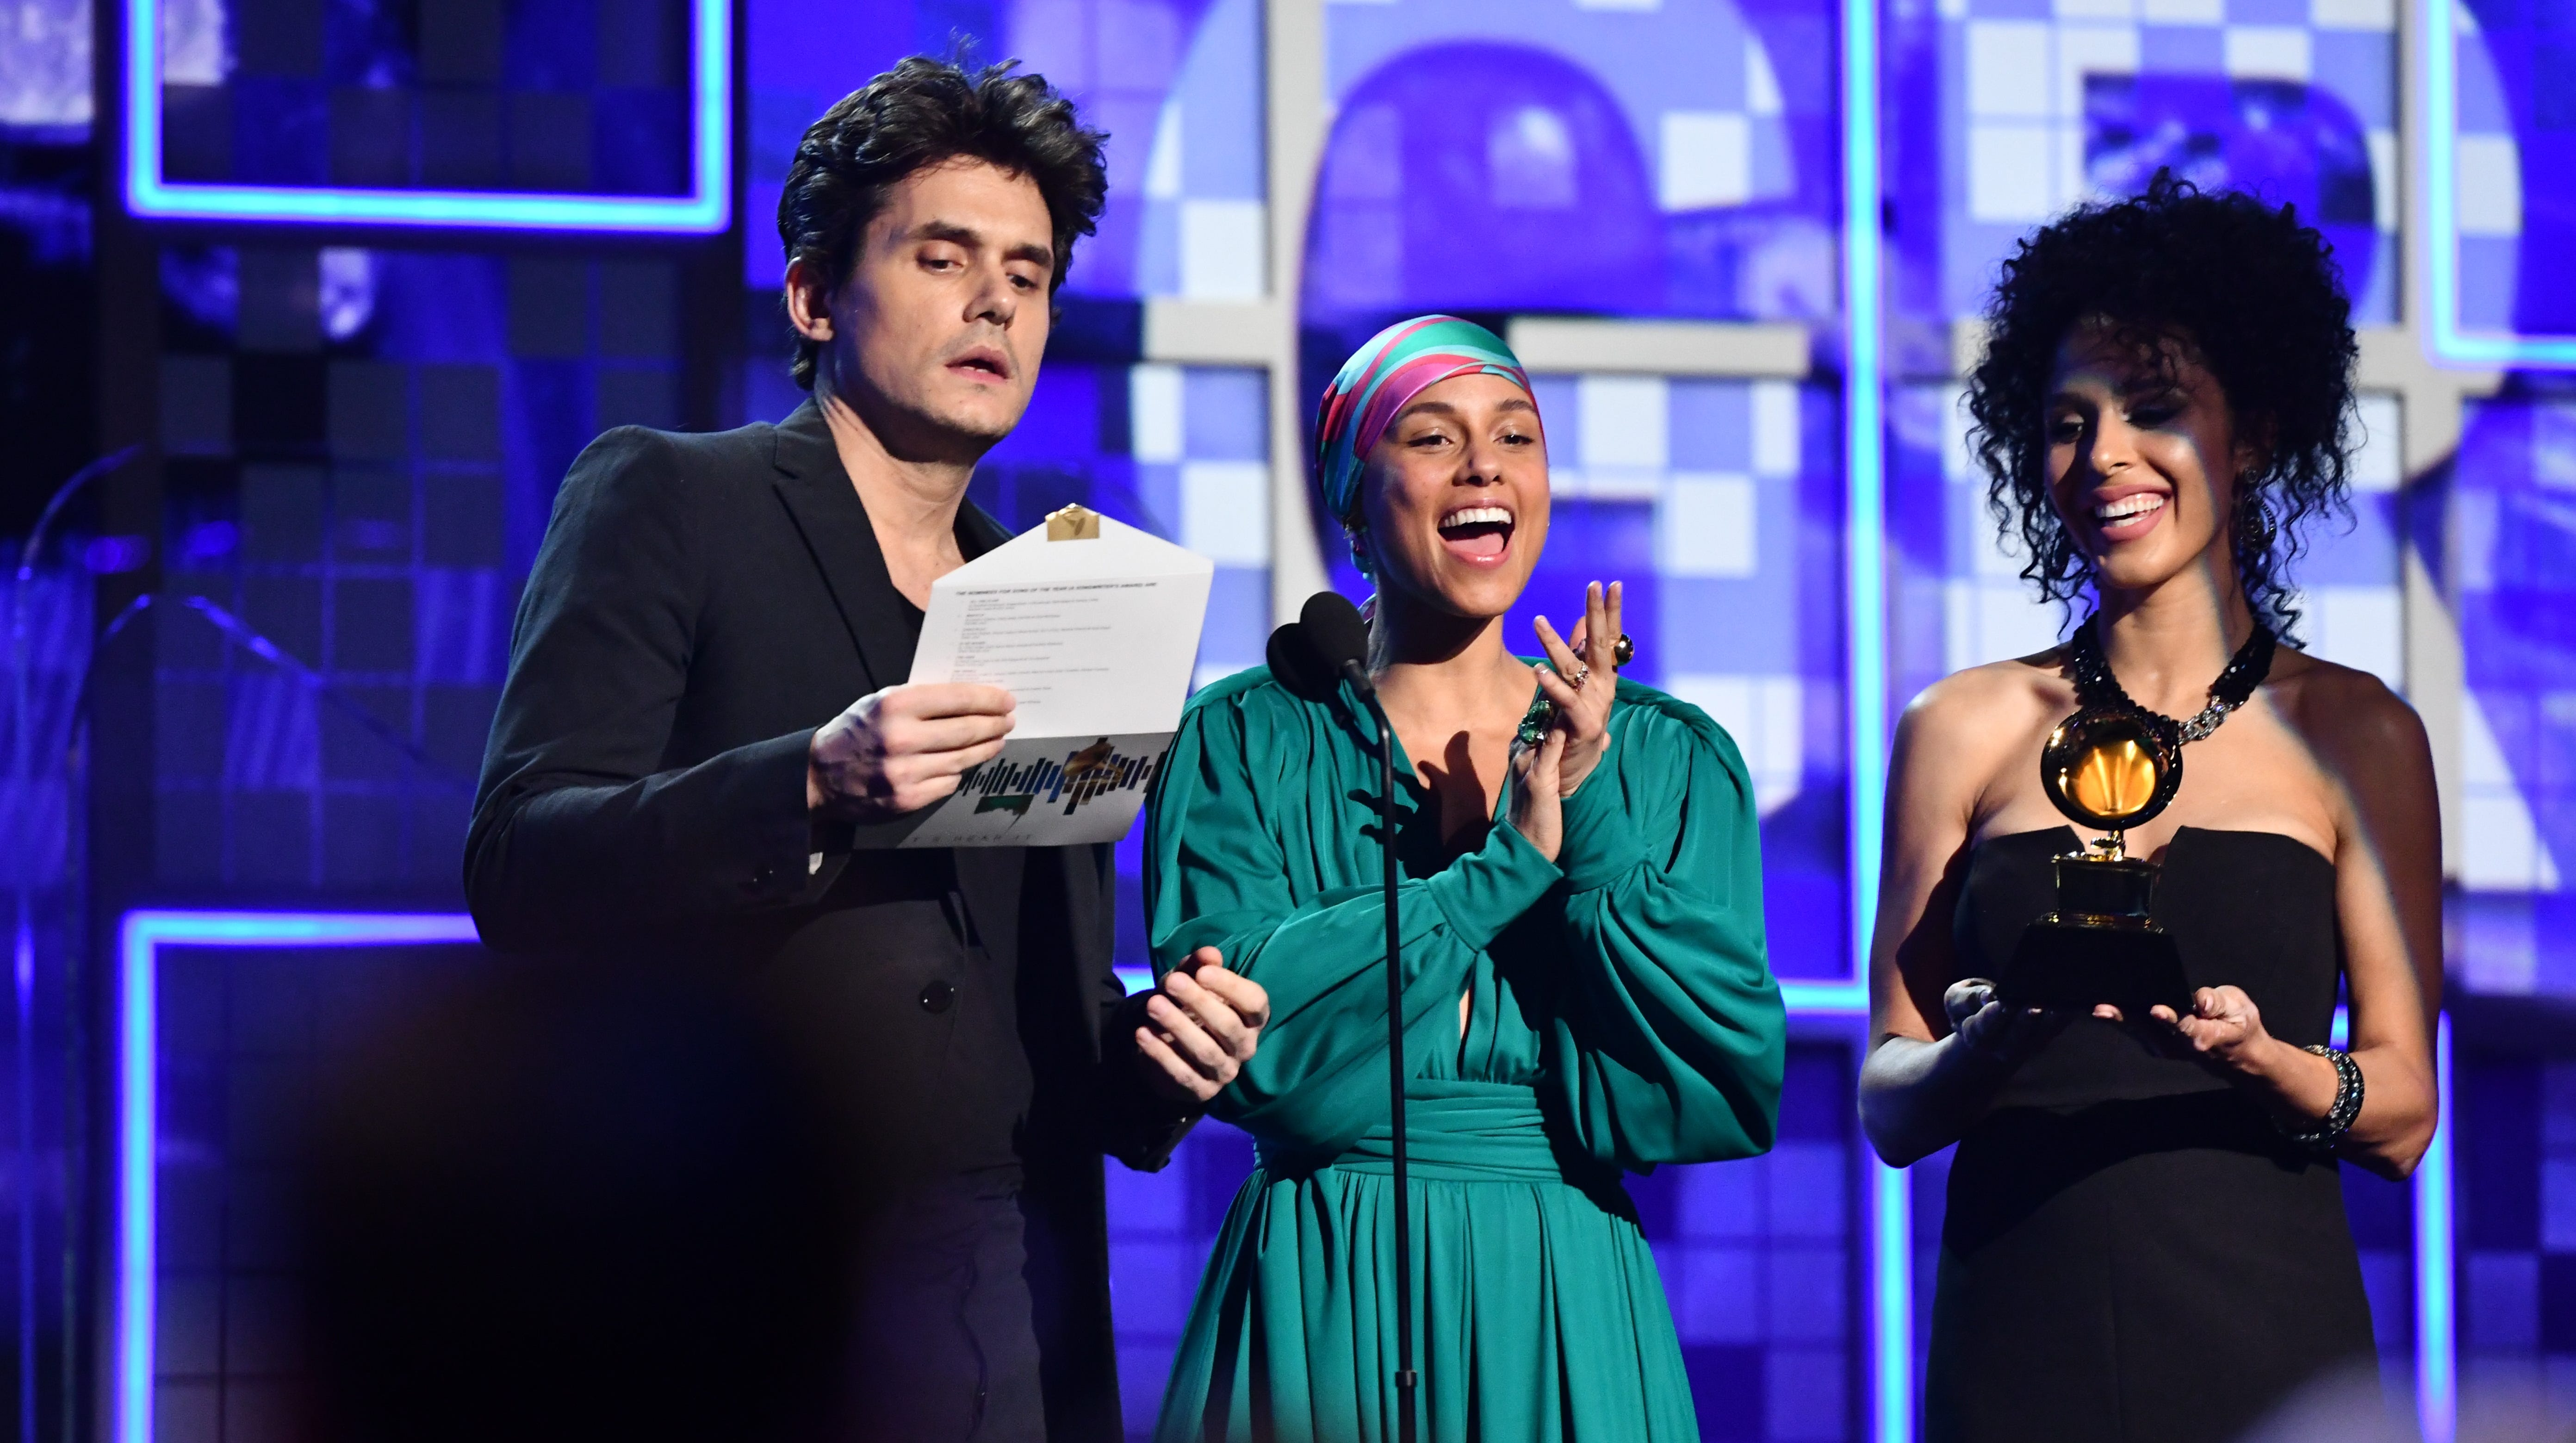 Grammys 2019: Grammys 2019: Alicia Keys Wows Internet With Jaw-dropping